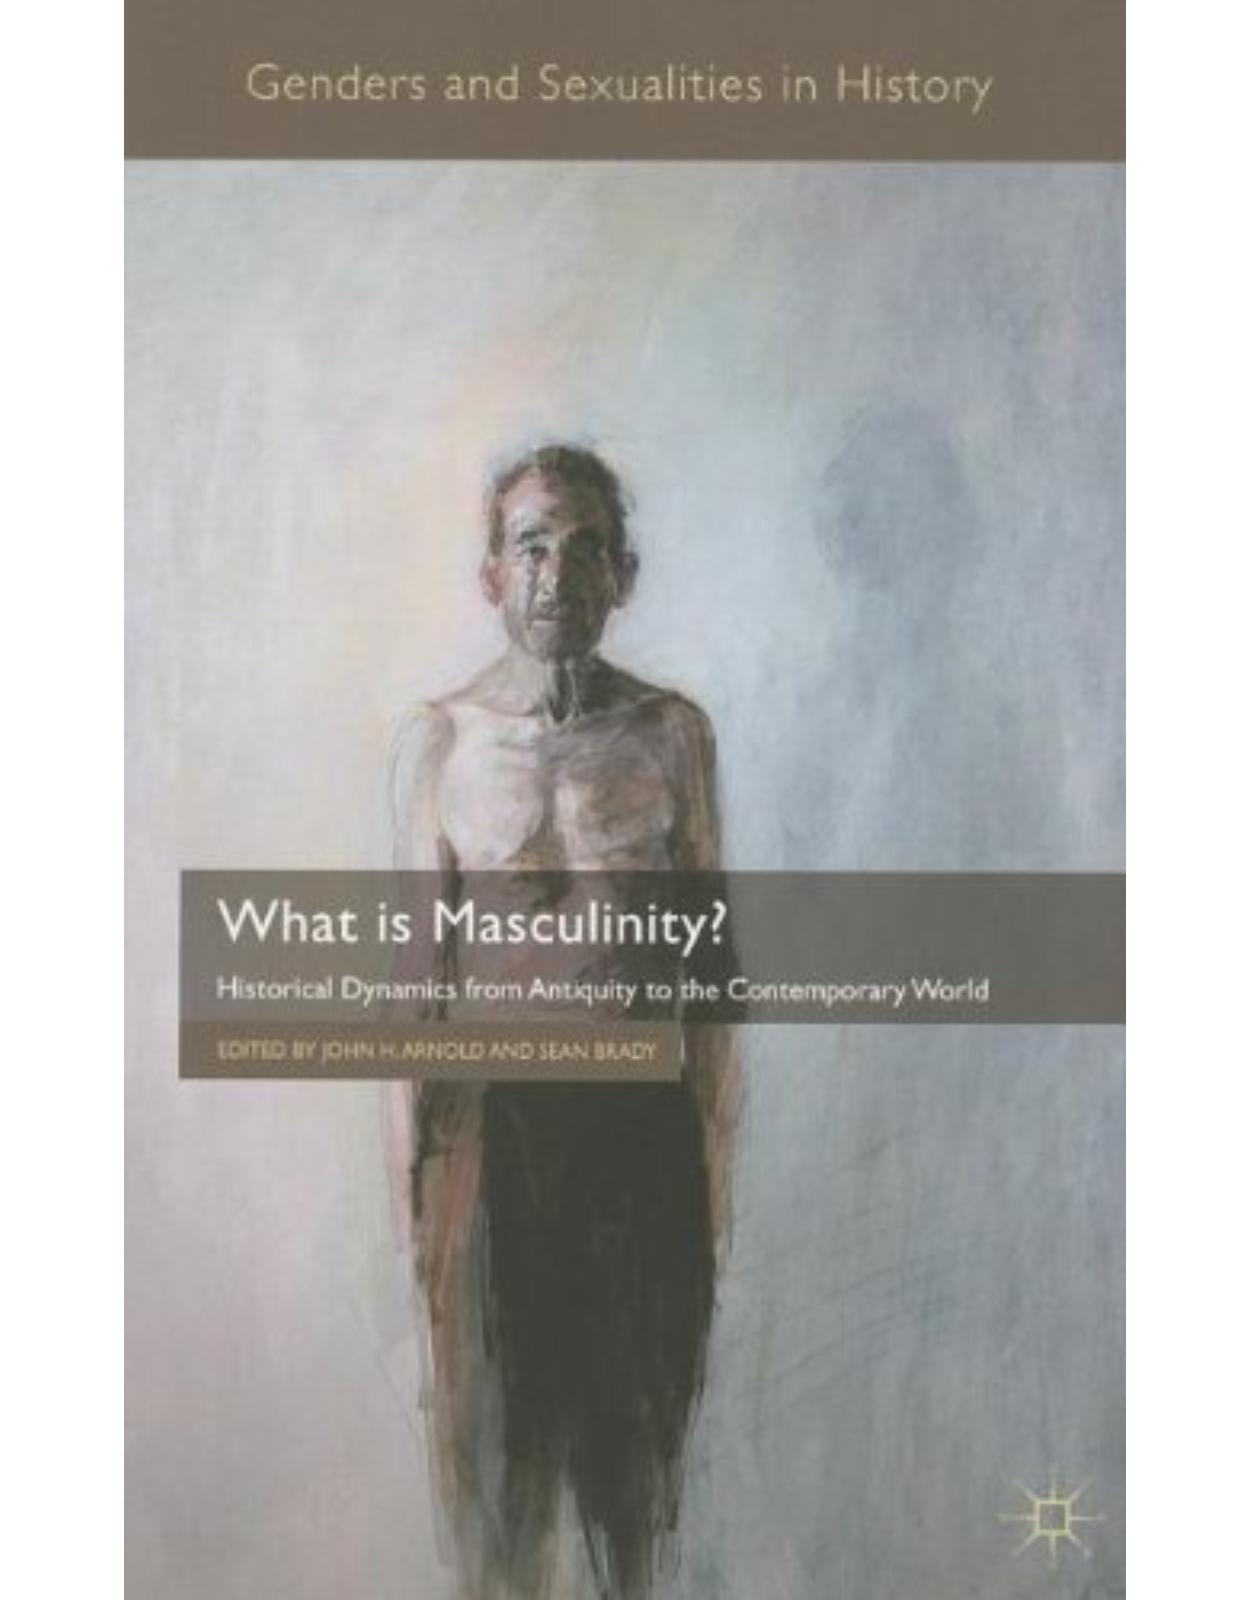 What is Masculinity?: Historical Dynamics from Antiquity to the Contemporary World (Genders and Sexualities in History)